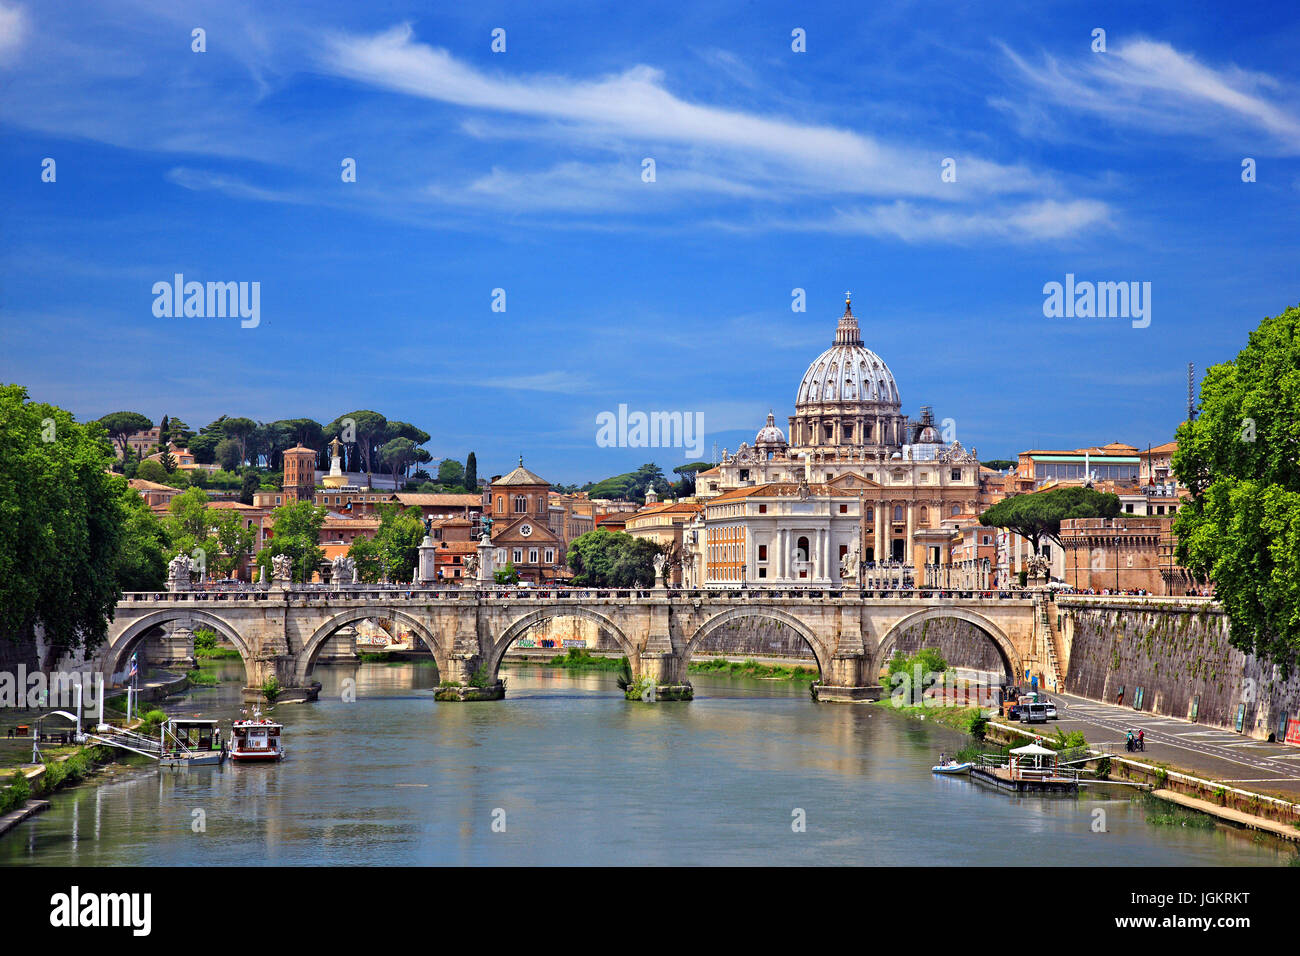 The dome of St Peter's Basilica and Ponte Sant'Angelo, Rome, Italy. - Stock Image